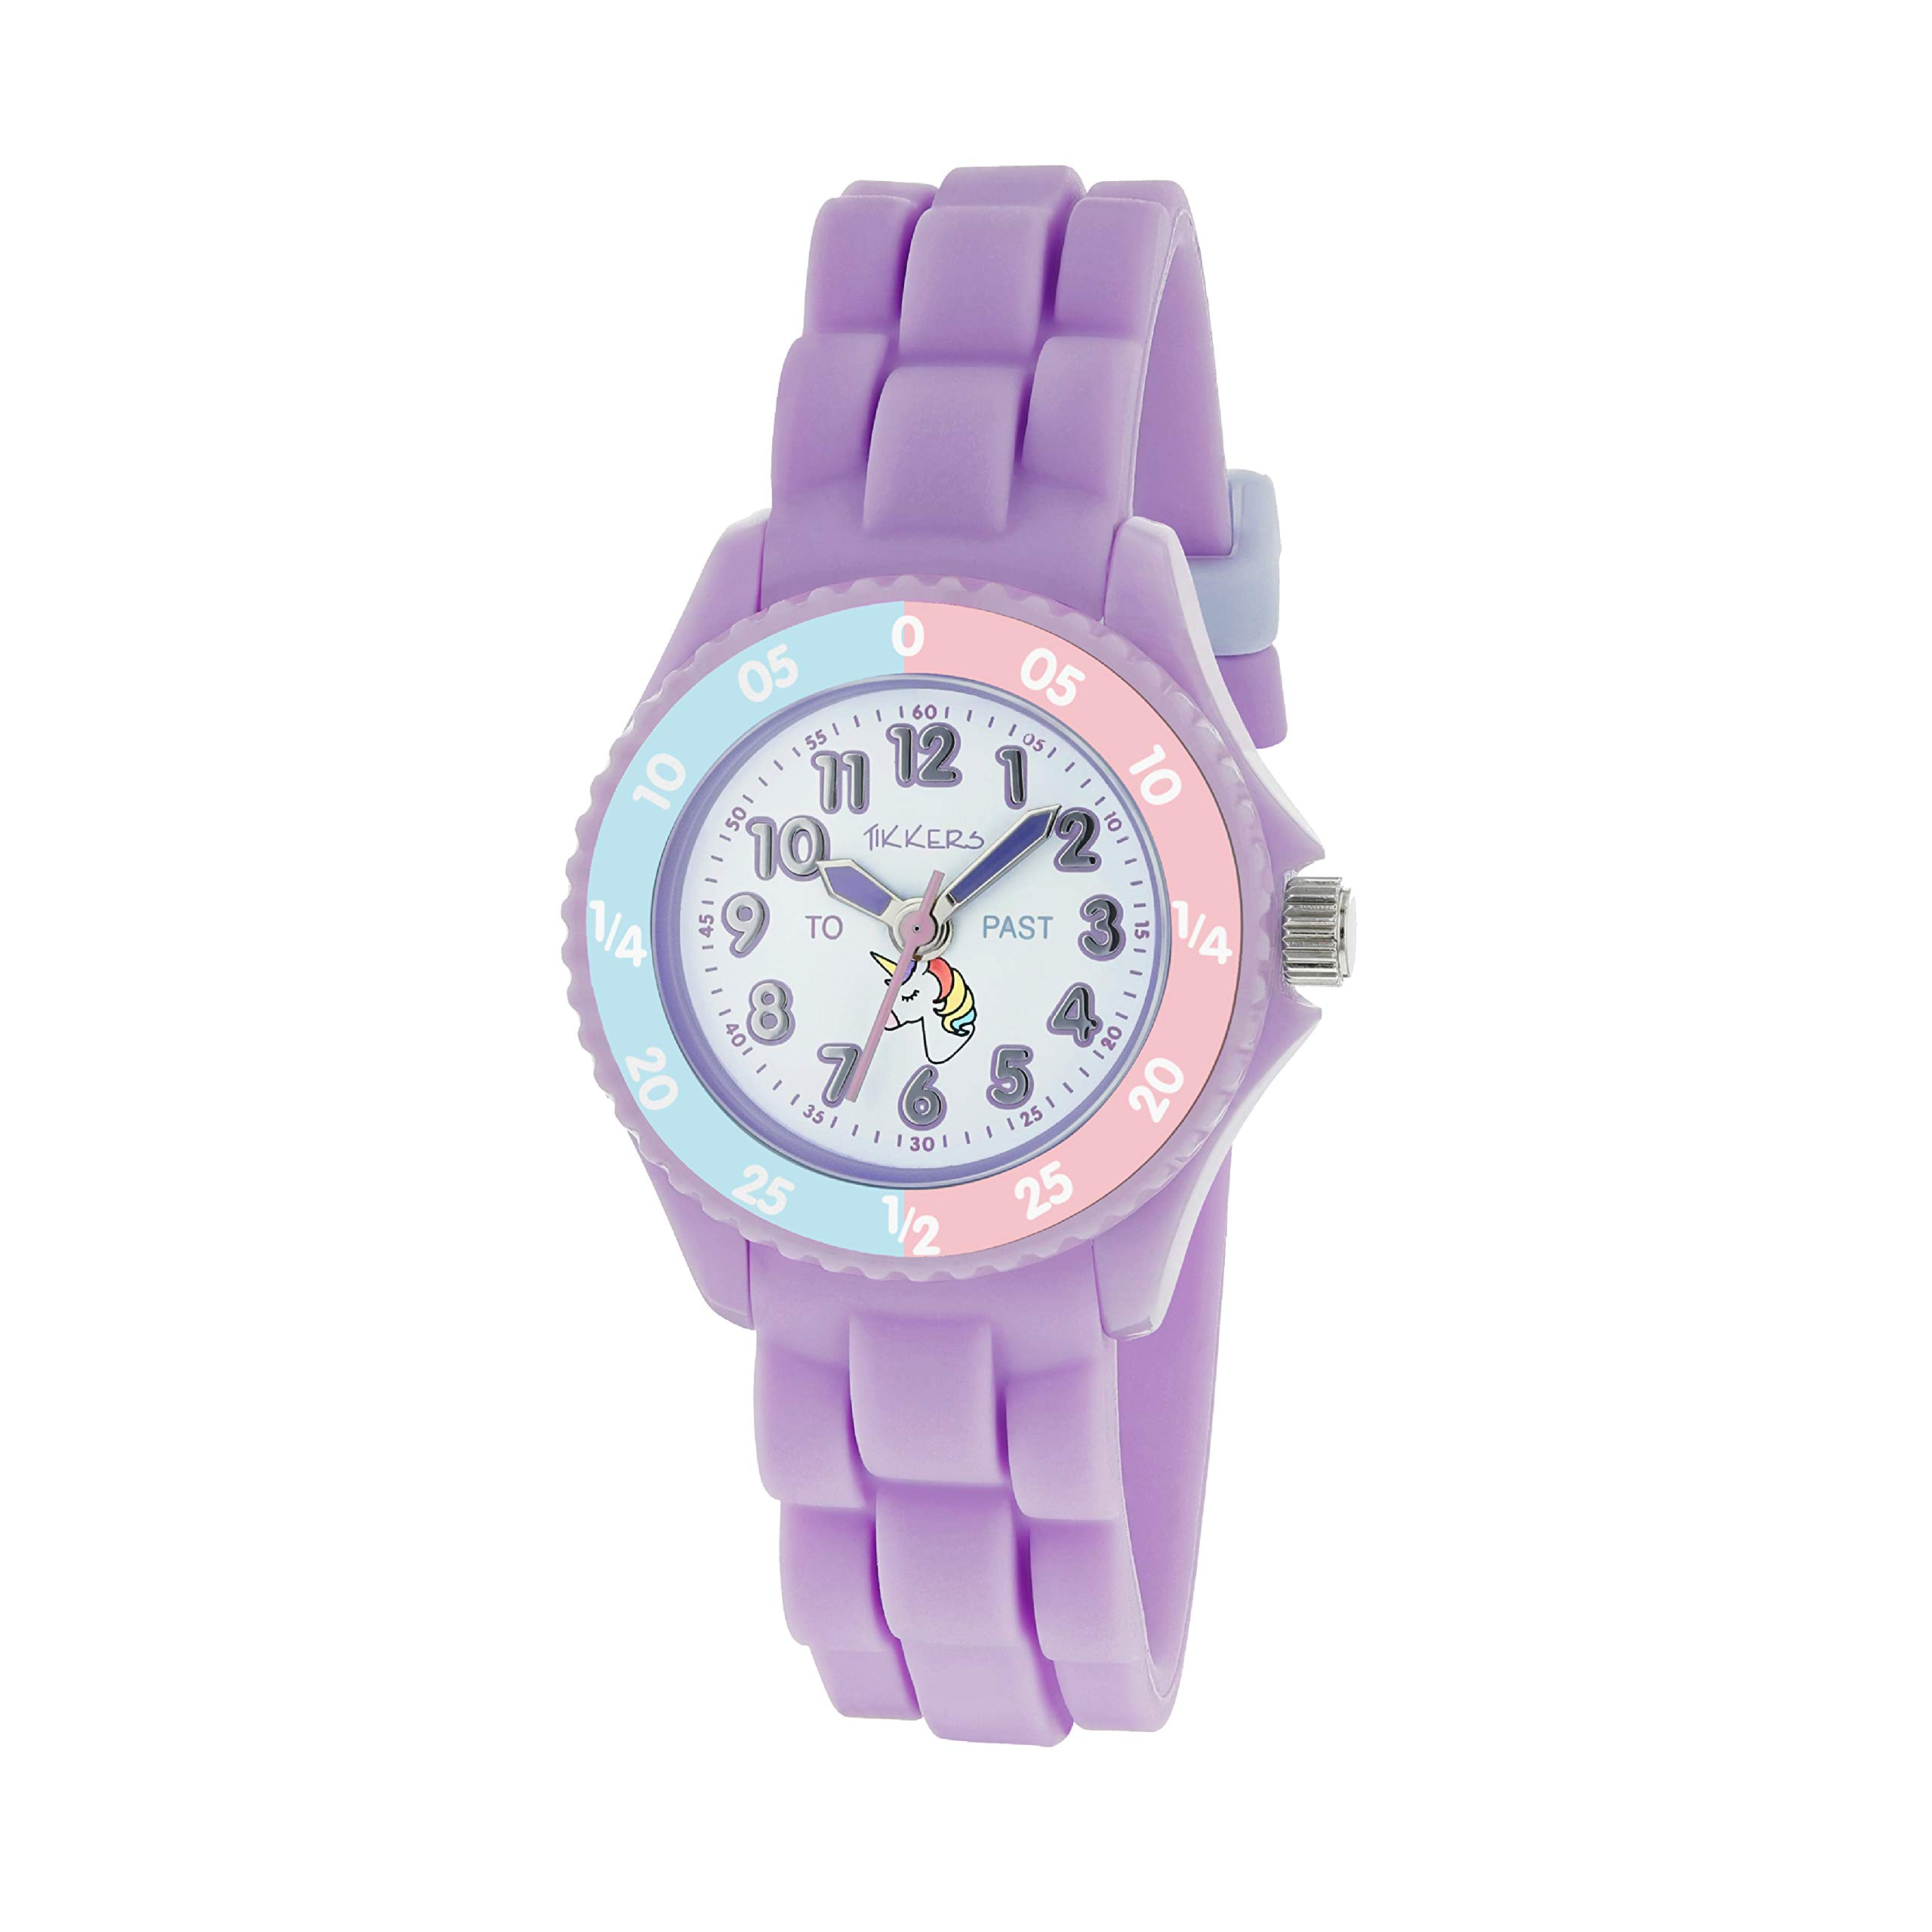 Tikkers Girls Analogue Classic Quartz Watch with Silicone Strap TK0147